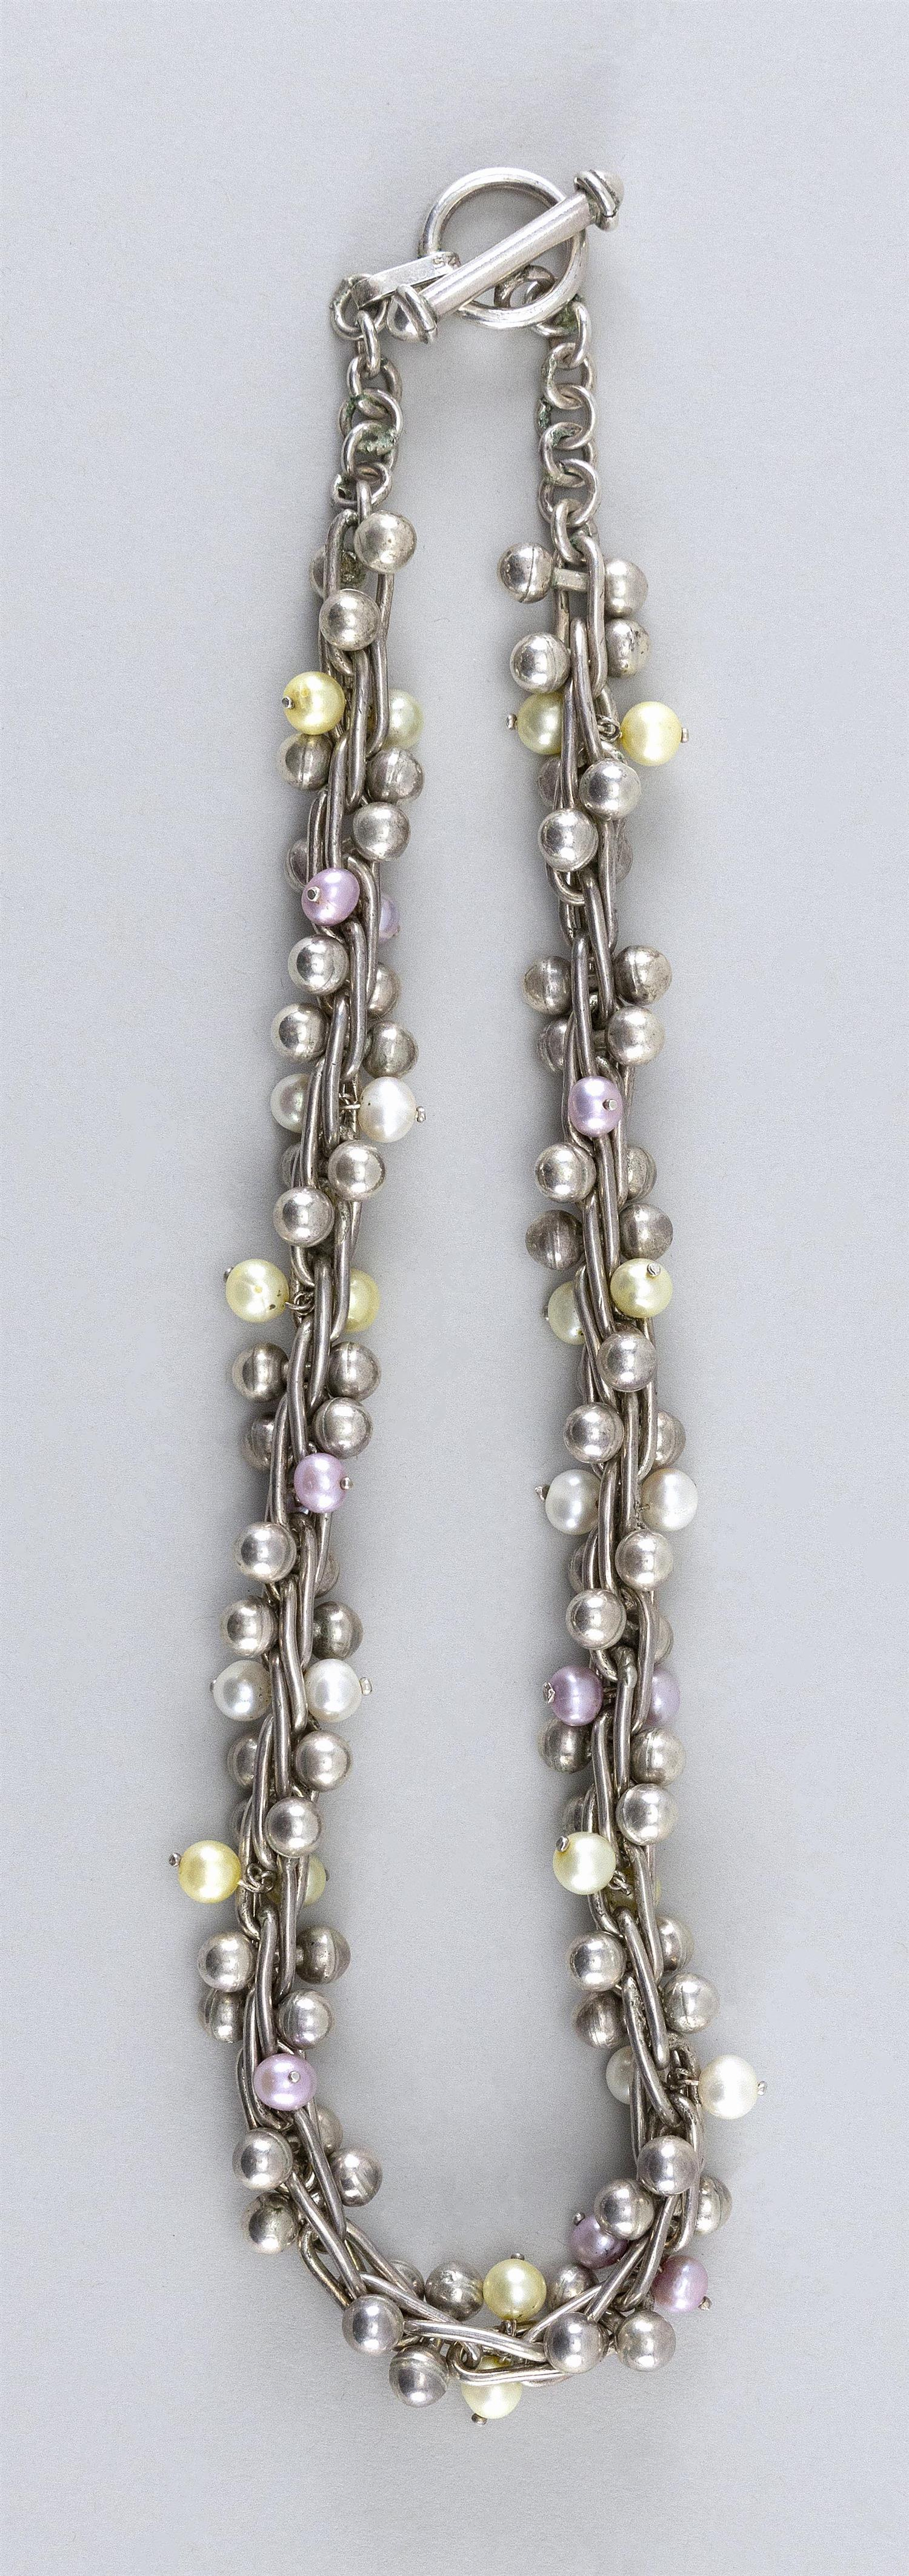 STERLING SILVER AND PEARL CHOKER Silver balls, and pink and white pearls intertwined within silver links. Toggle closure. Clasp mark...